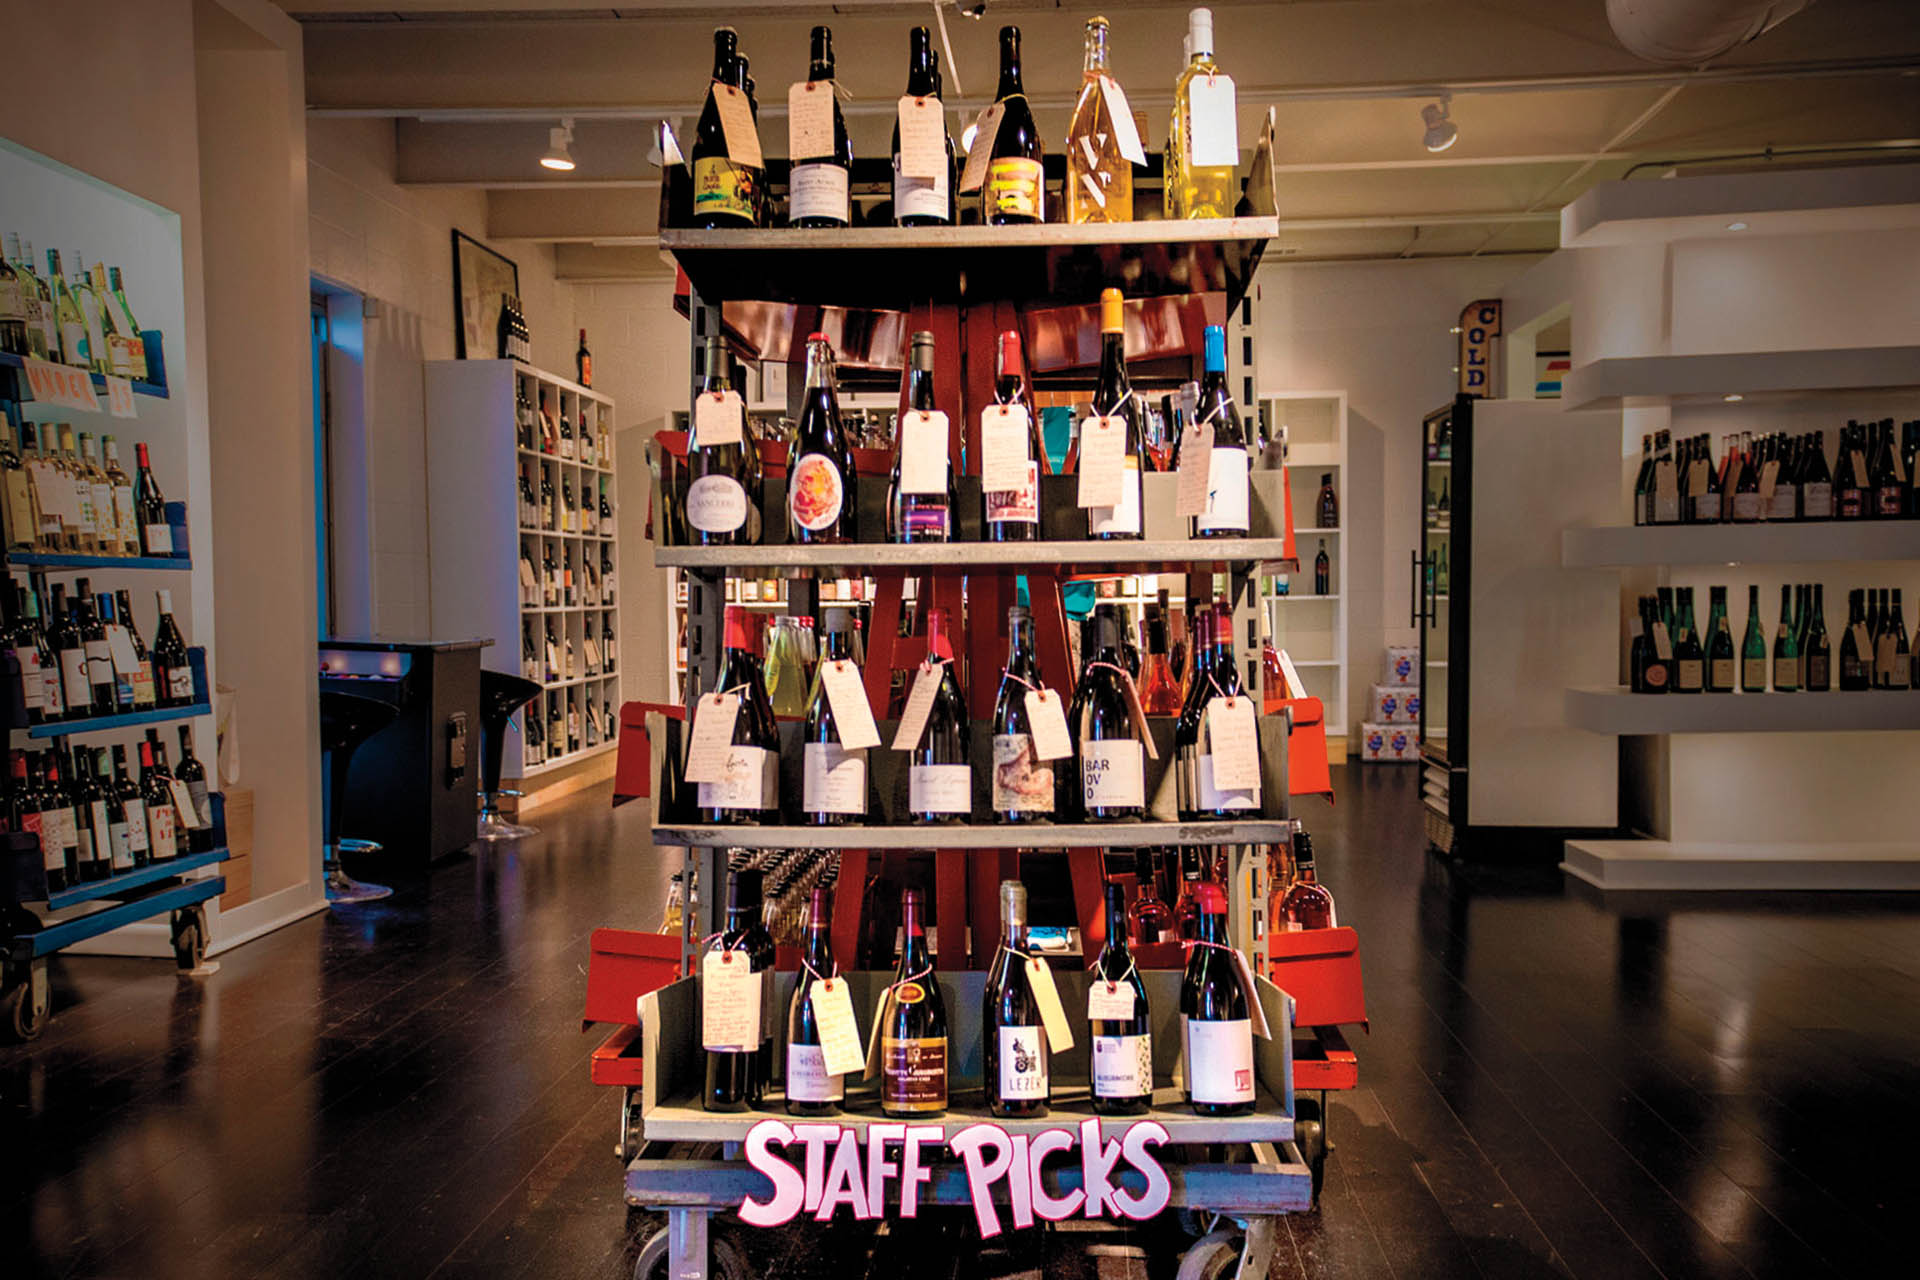 """Interior of Henry & Son, showing the """"staff picks"""" shelves"""